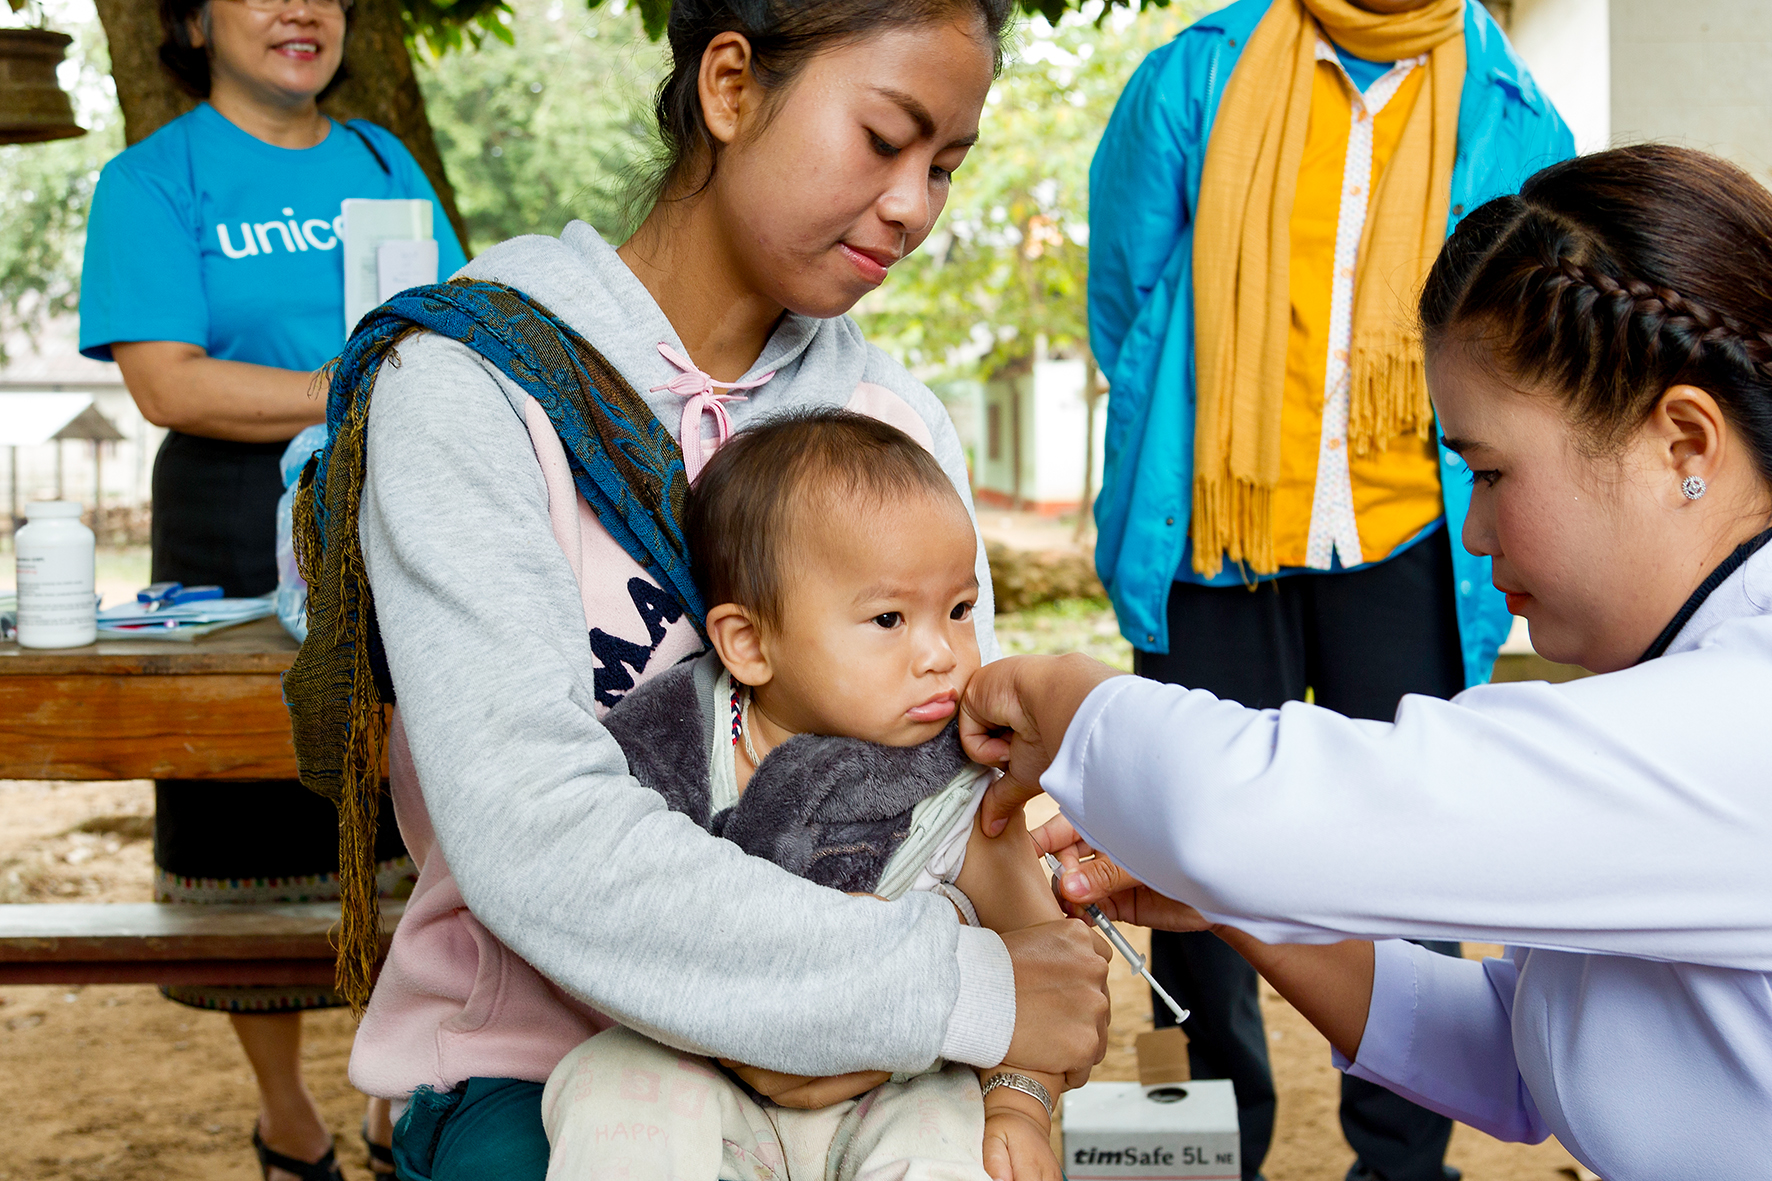 A lady administers a vaccine on a baby held by another lady.